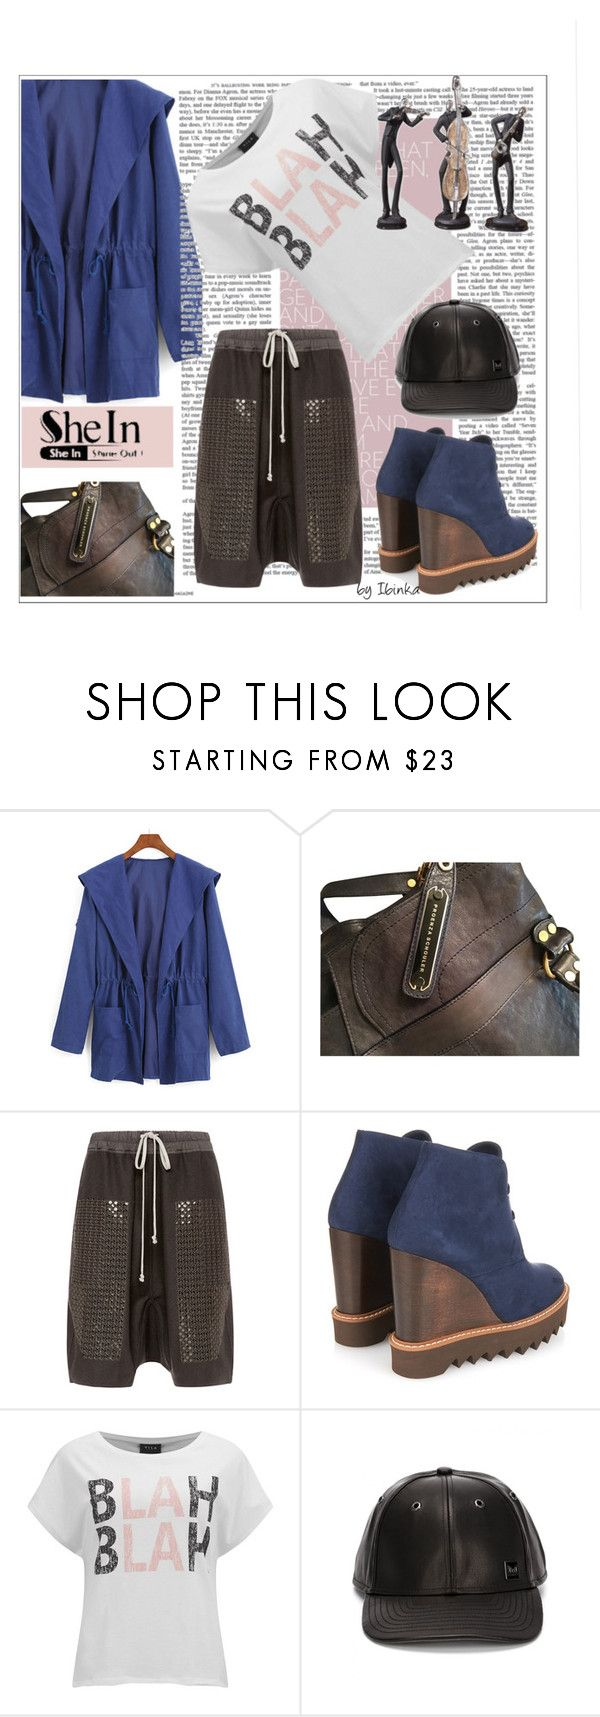 """Blue Waist Coat"" by ibinka ❤ liked on Polyvore featuring Proenza Schouler, Rick Owens, STELLA McCARTNEY, VILA and MELIN"